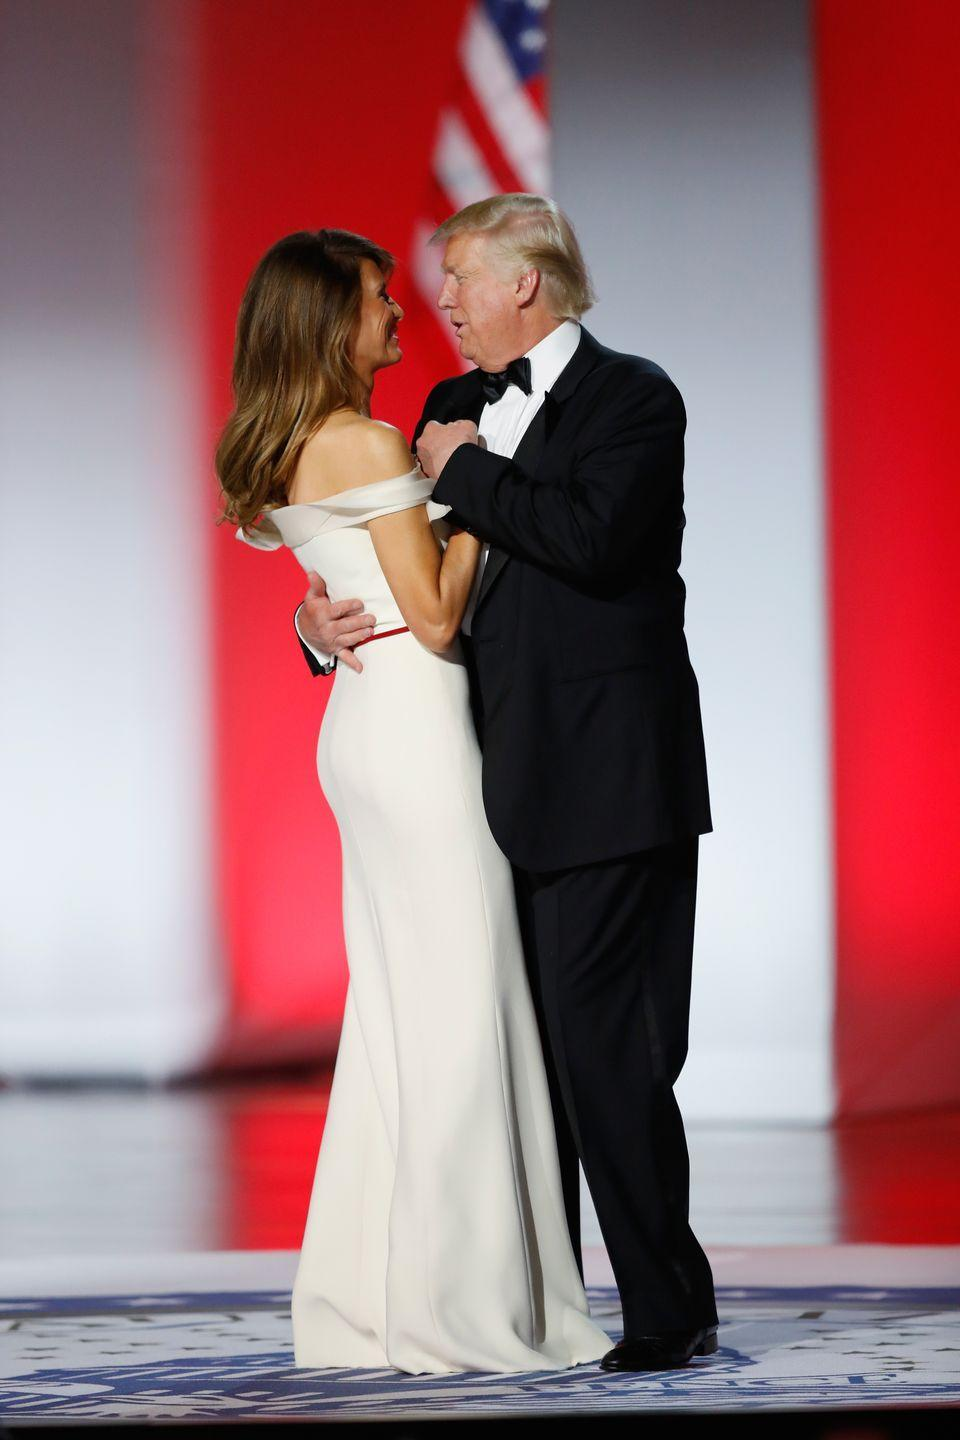 <p>Donald Trump and his wife, Melania Trump, dance at the inaugural ball honoring his appointment as the 45th President of the United States. For the evening's events, the First Lady wore an off-the-shoulder white gown with a red sash, designed by Carolina Herrera's former creative director, Hervé Pierre. </p>